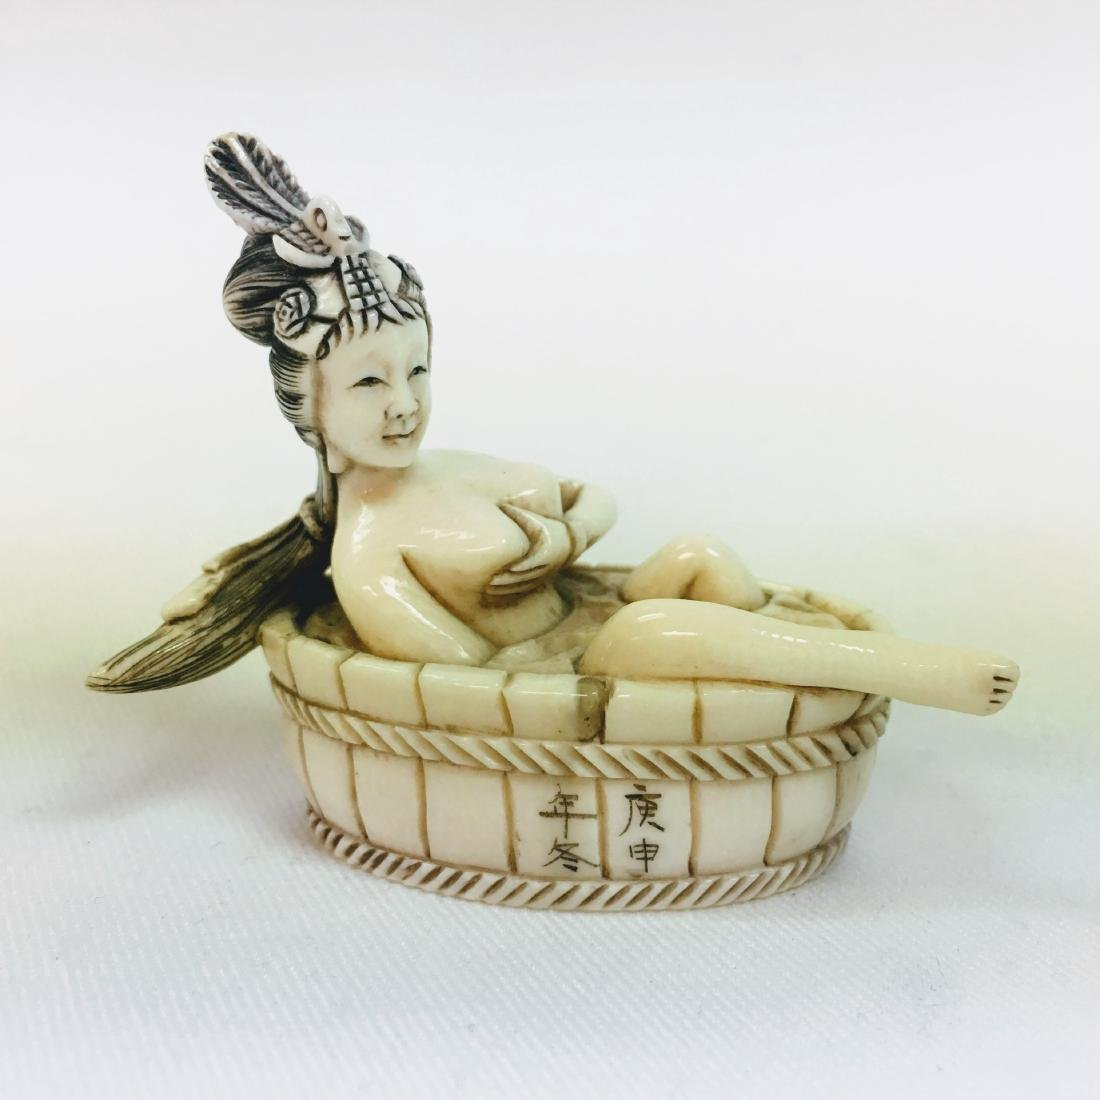 19th Century Okimono woman in tub erotic figure